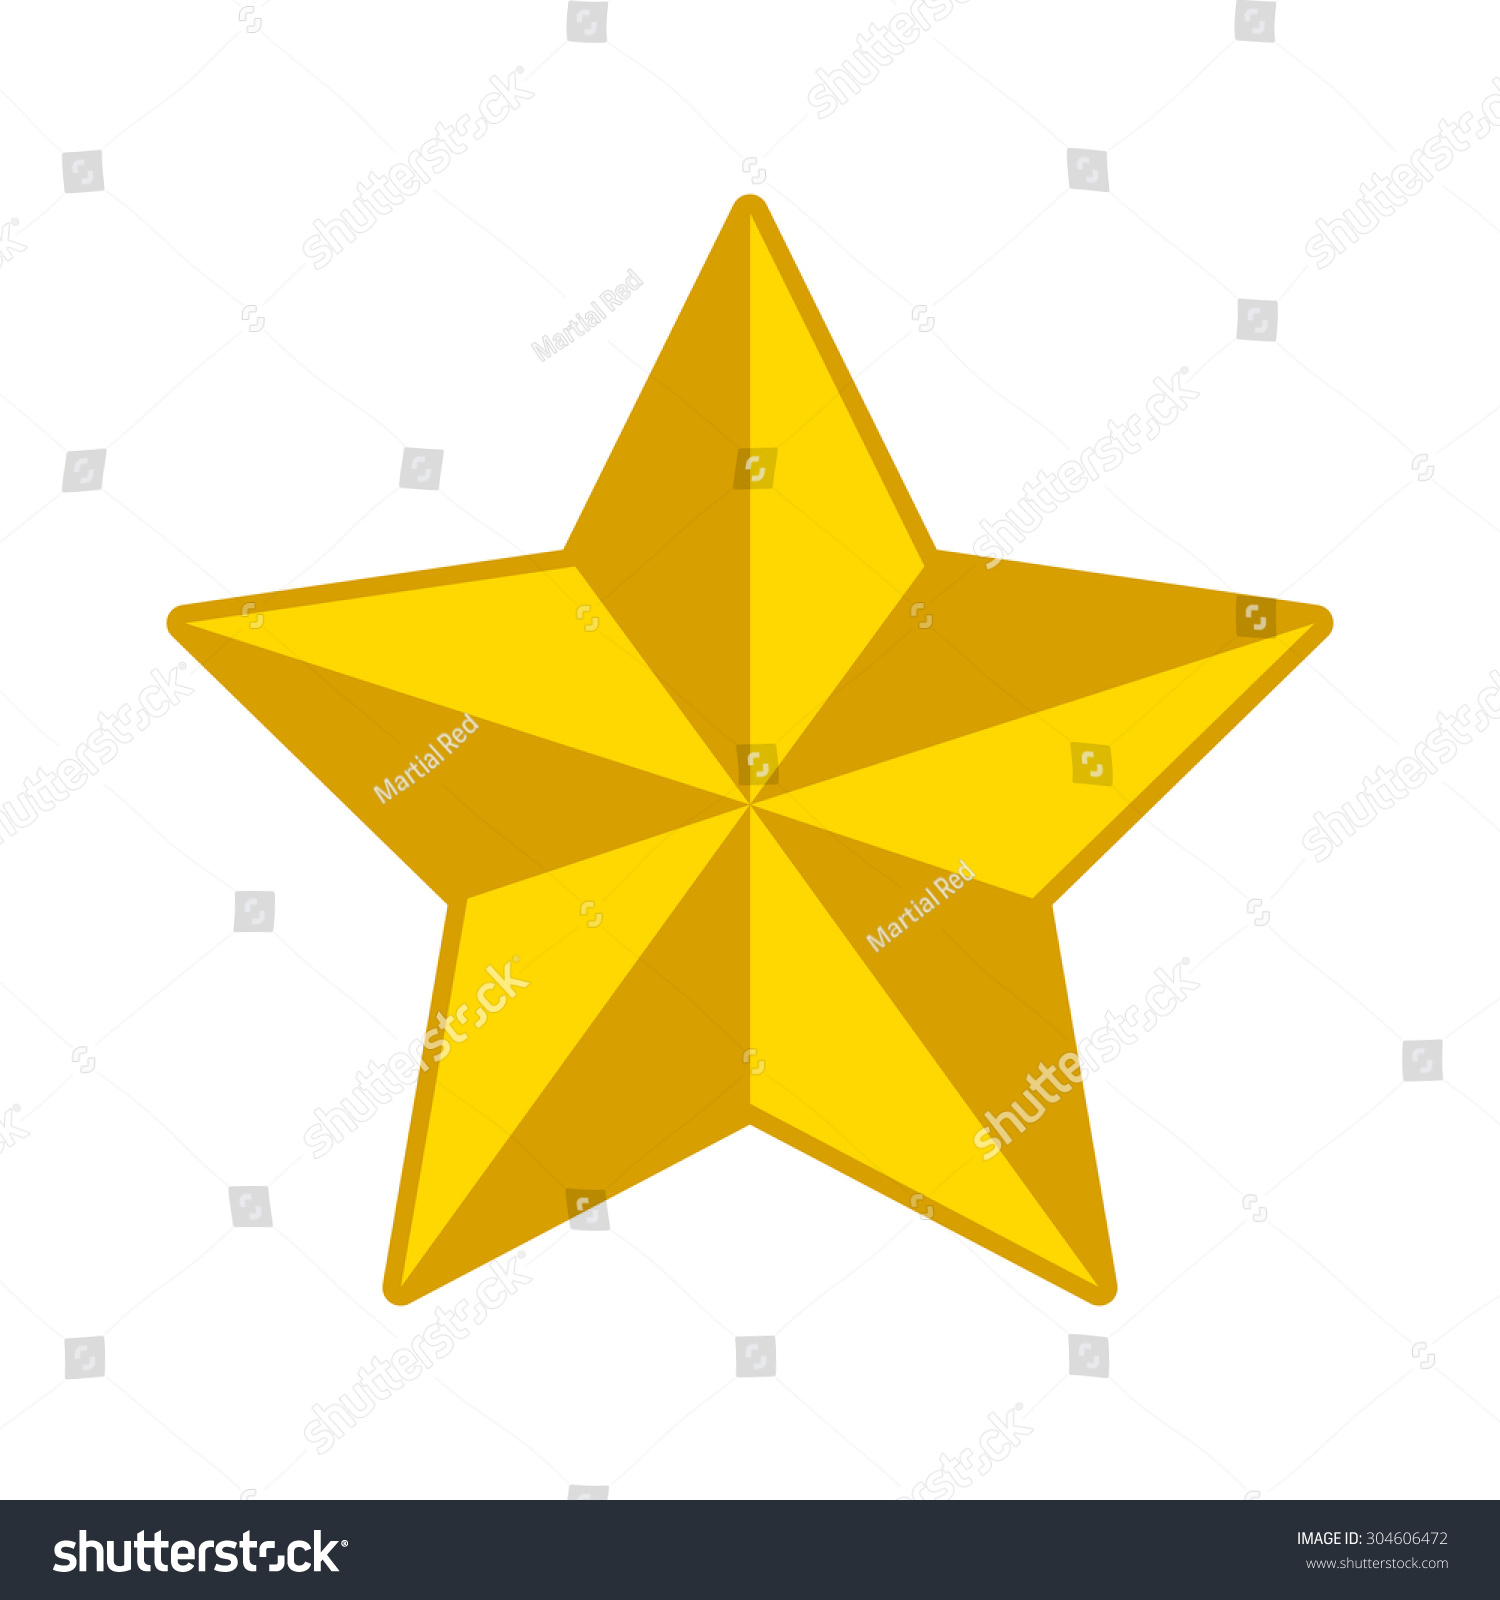 3d gold star christmas star decoration stock vector for 3d star decoration